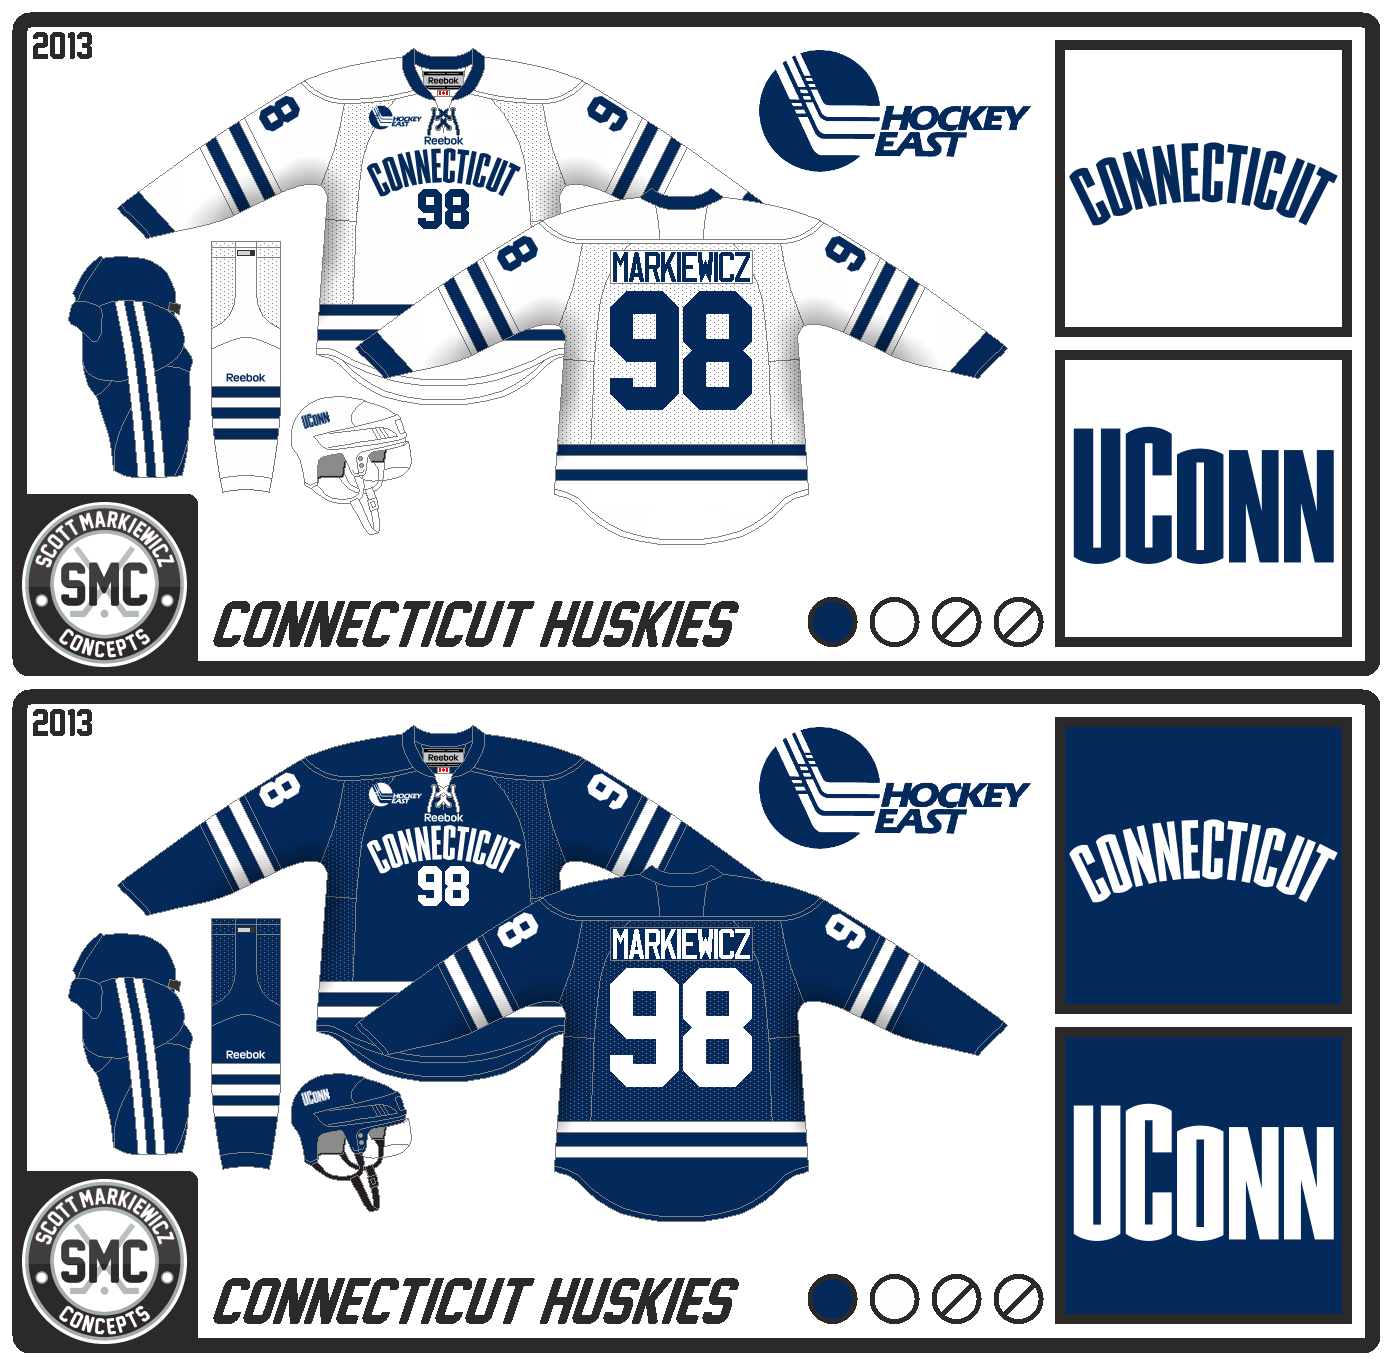 352a65a77aa Over the summer, the UConn Huskies men's hockey team announced that they  will be joining Hockey East in 2014 and play games at the XL Center  (Formerly the ...